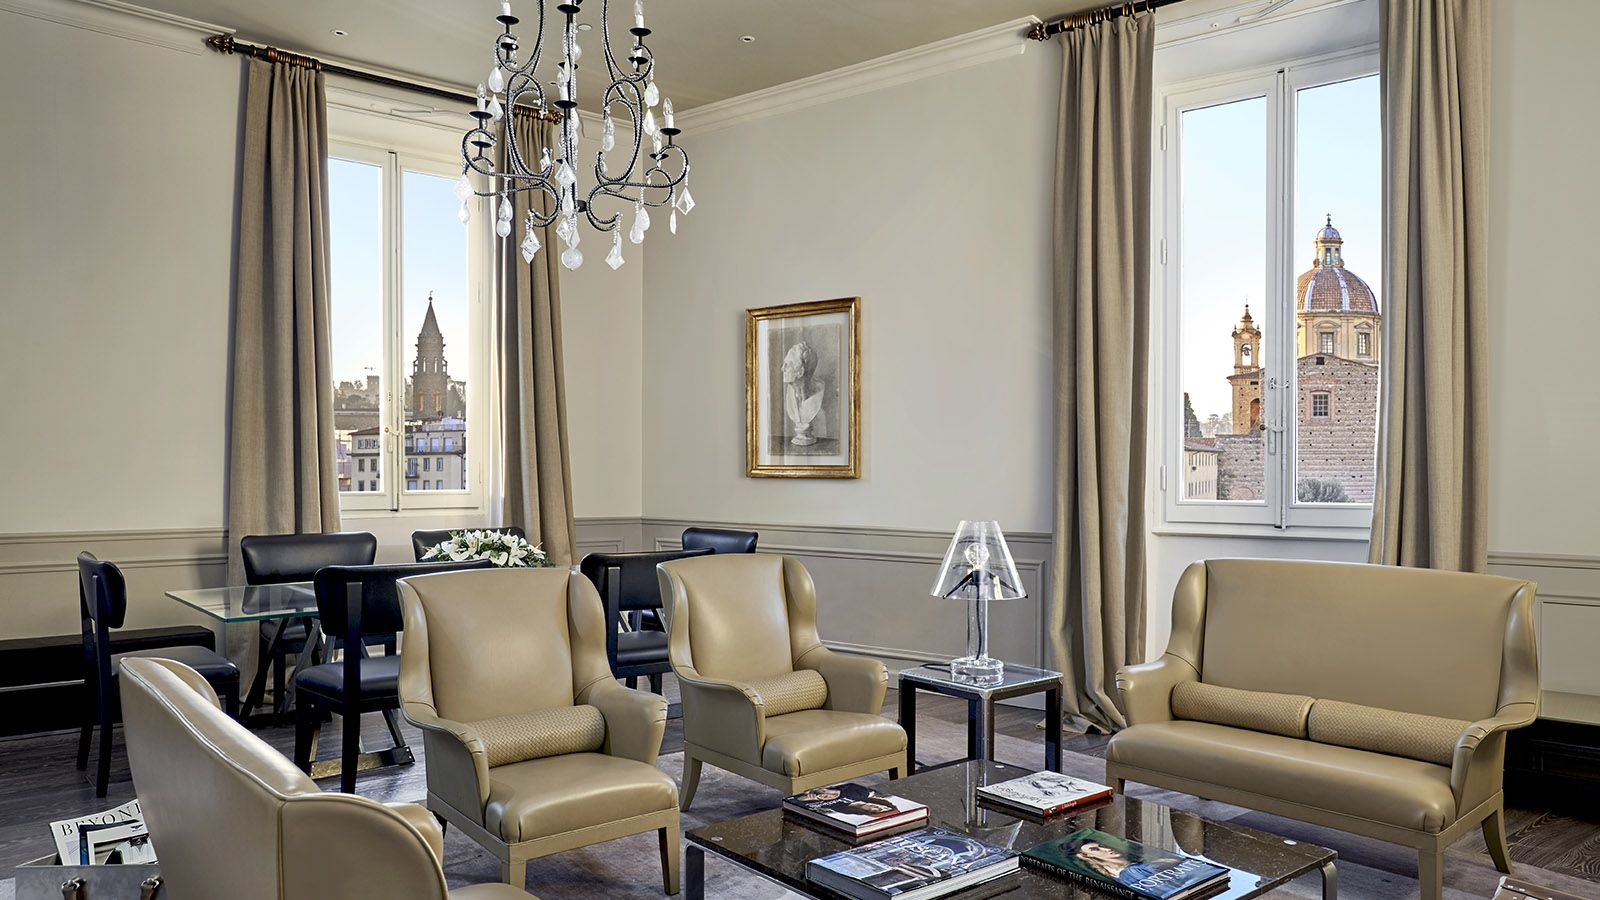 Bottega Veneta Suite, The St. Regis Florence, Official Website